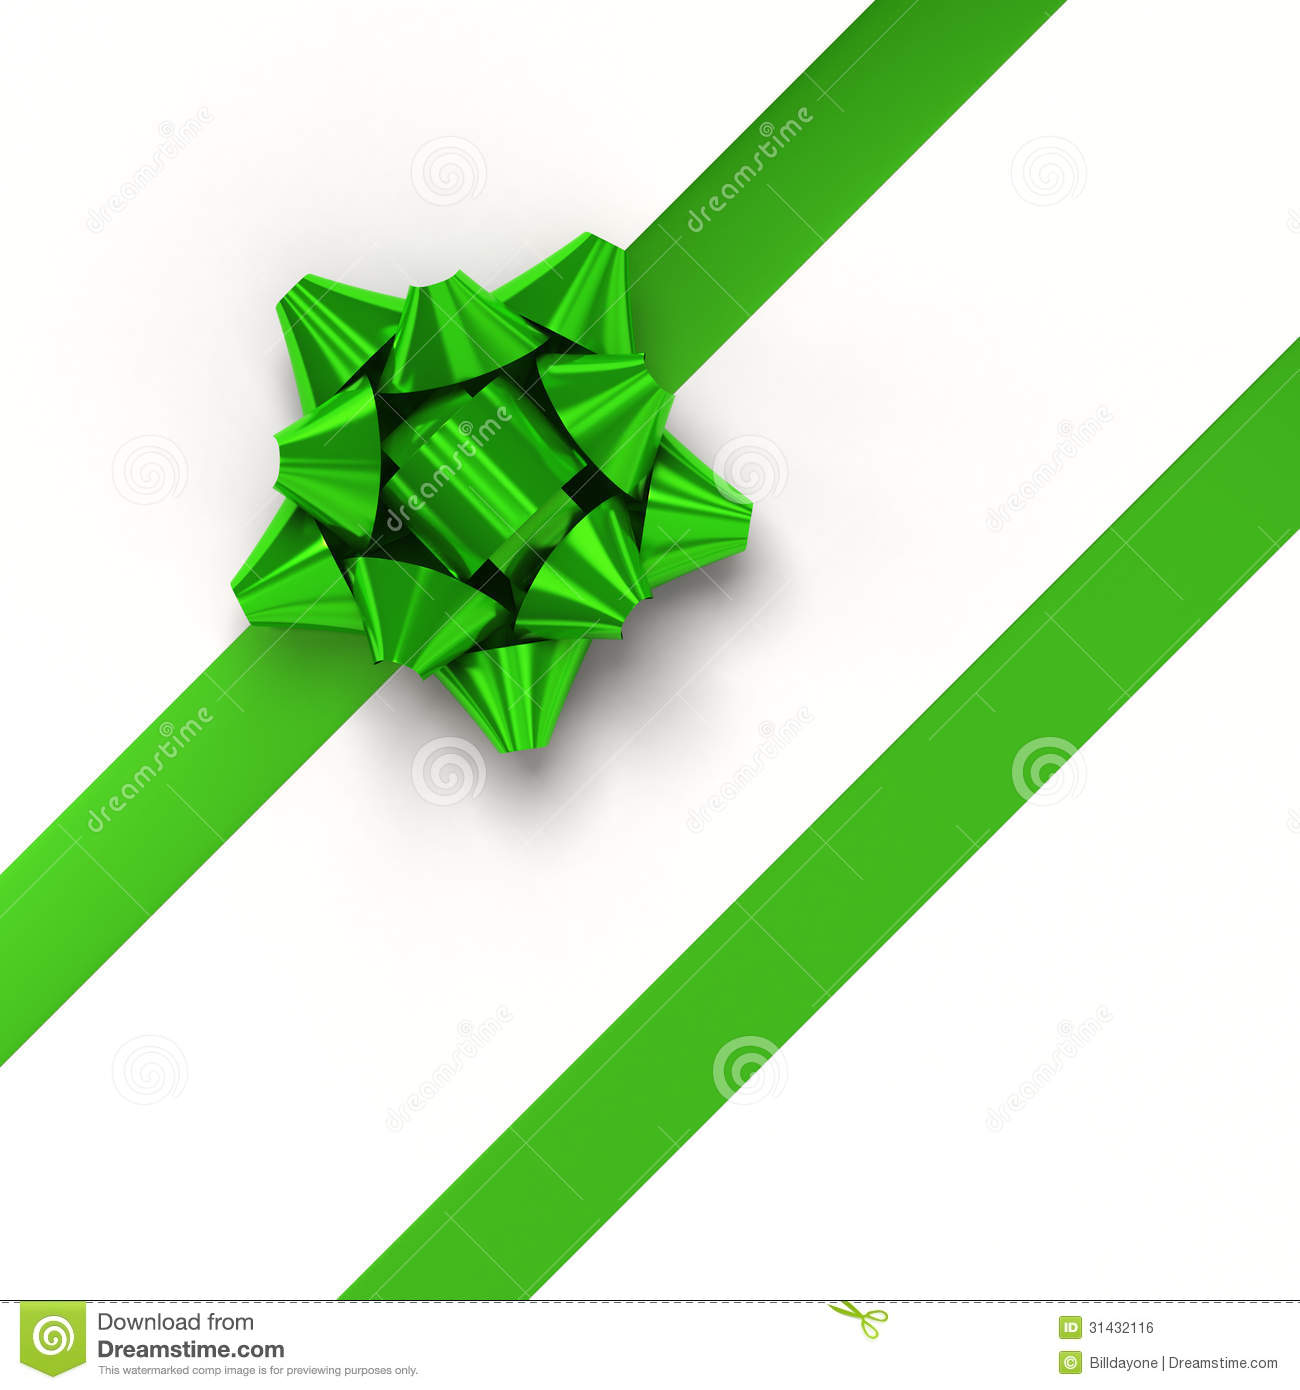 Green gift ribbons in diagonal array stock illustration green gift ribbons in diagonal array stock illustration illustration of birthday person 31432116 negle Gallery